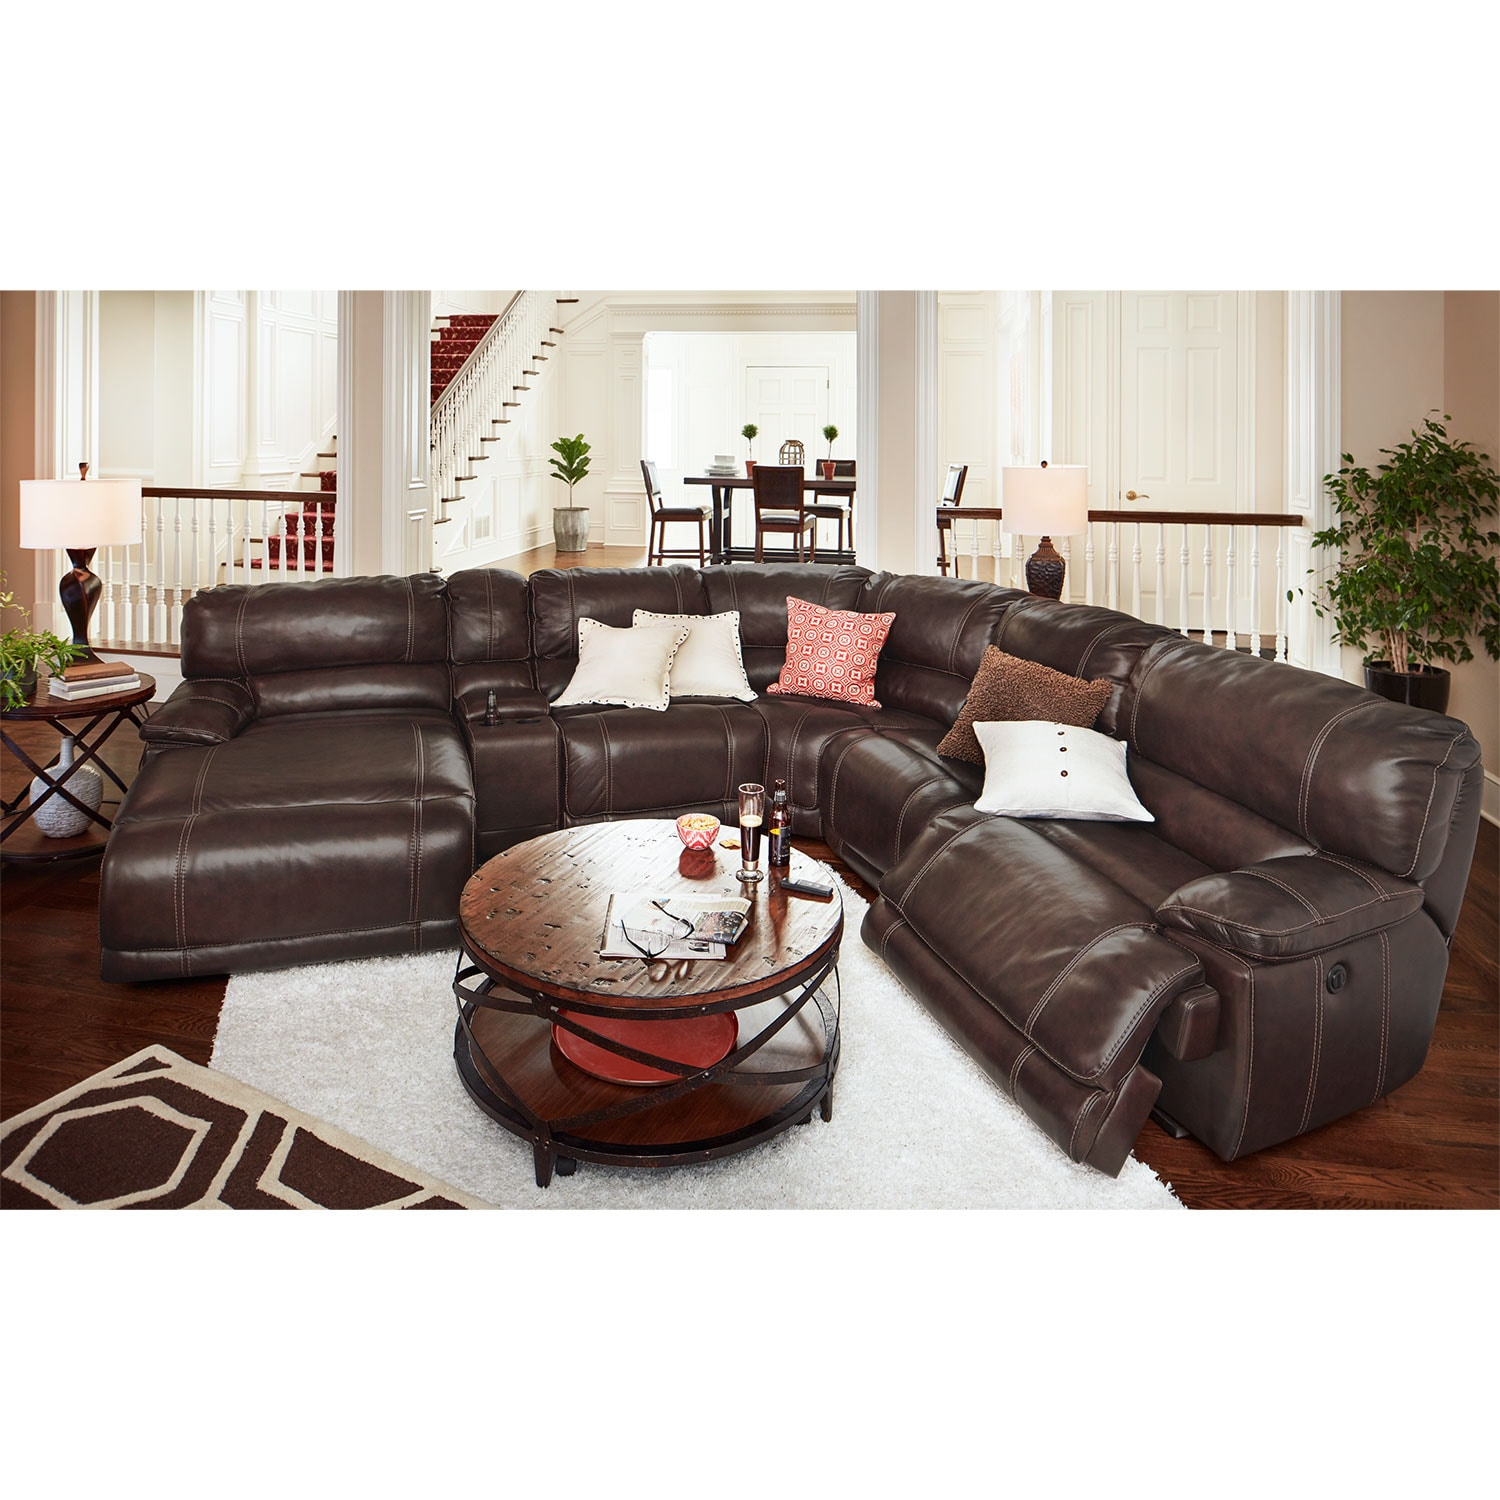 pieces own your set full small of names size couch recliner sectional sectionals build sofa modular with